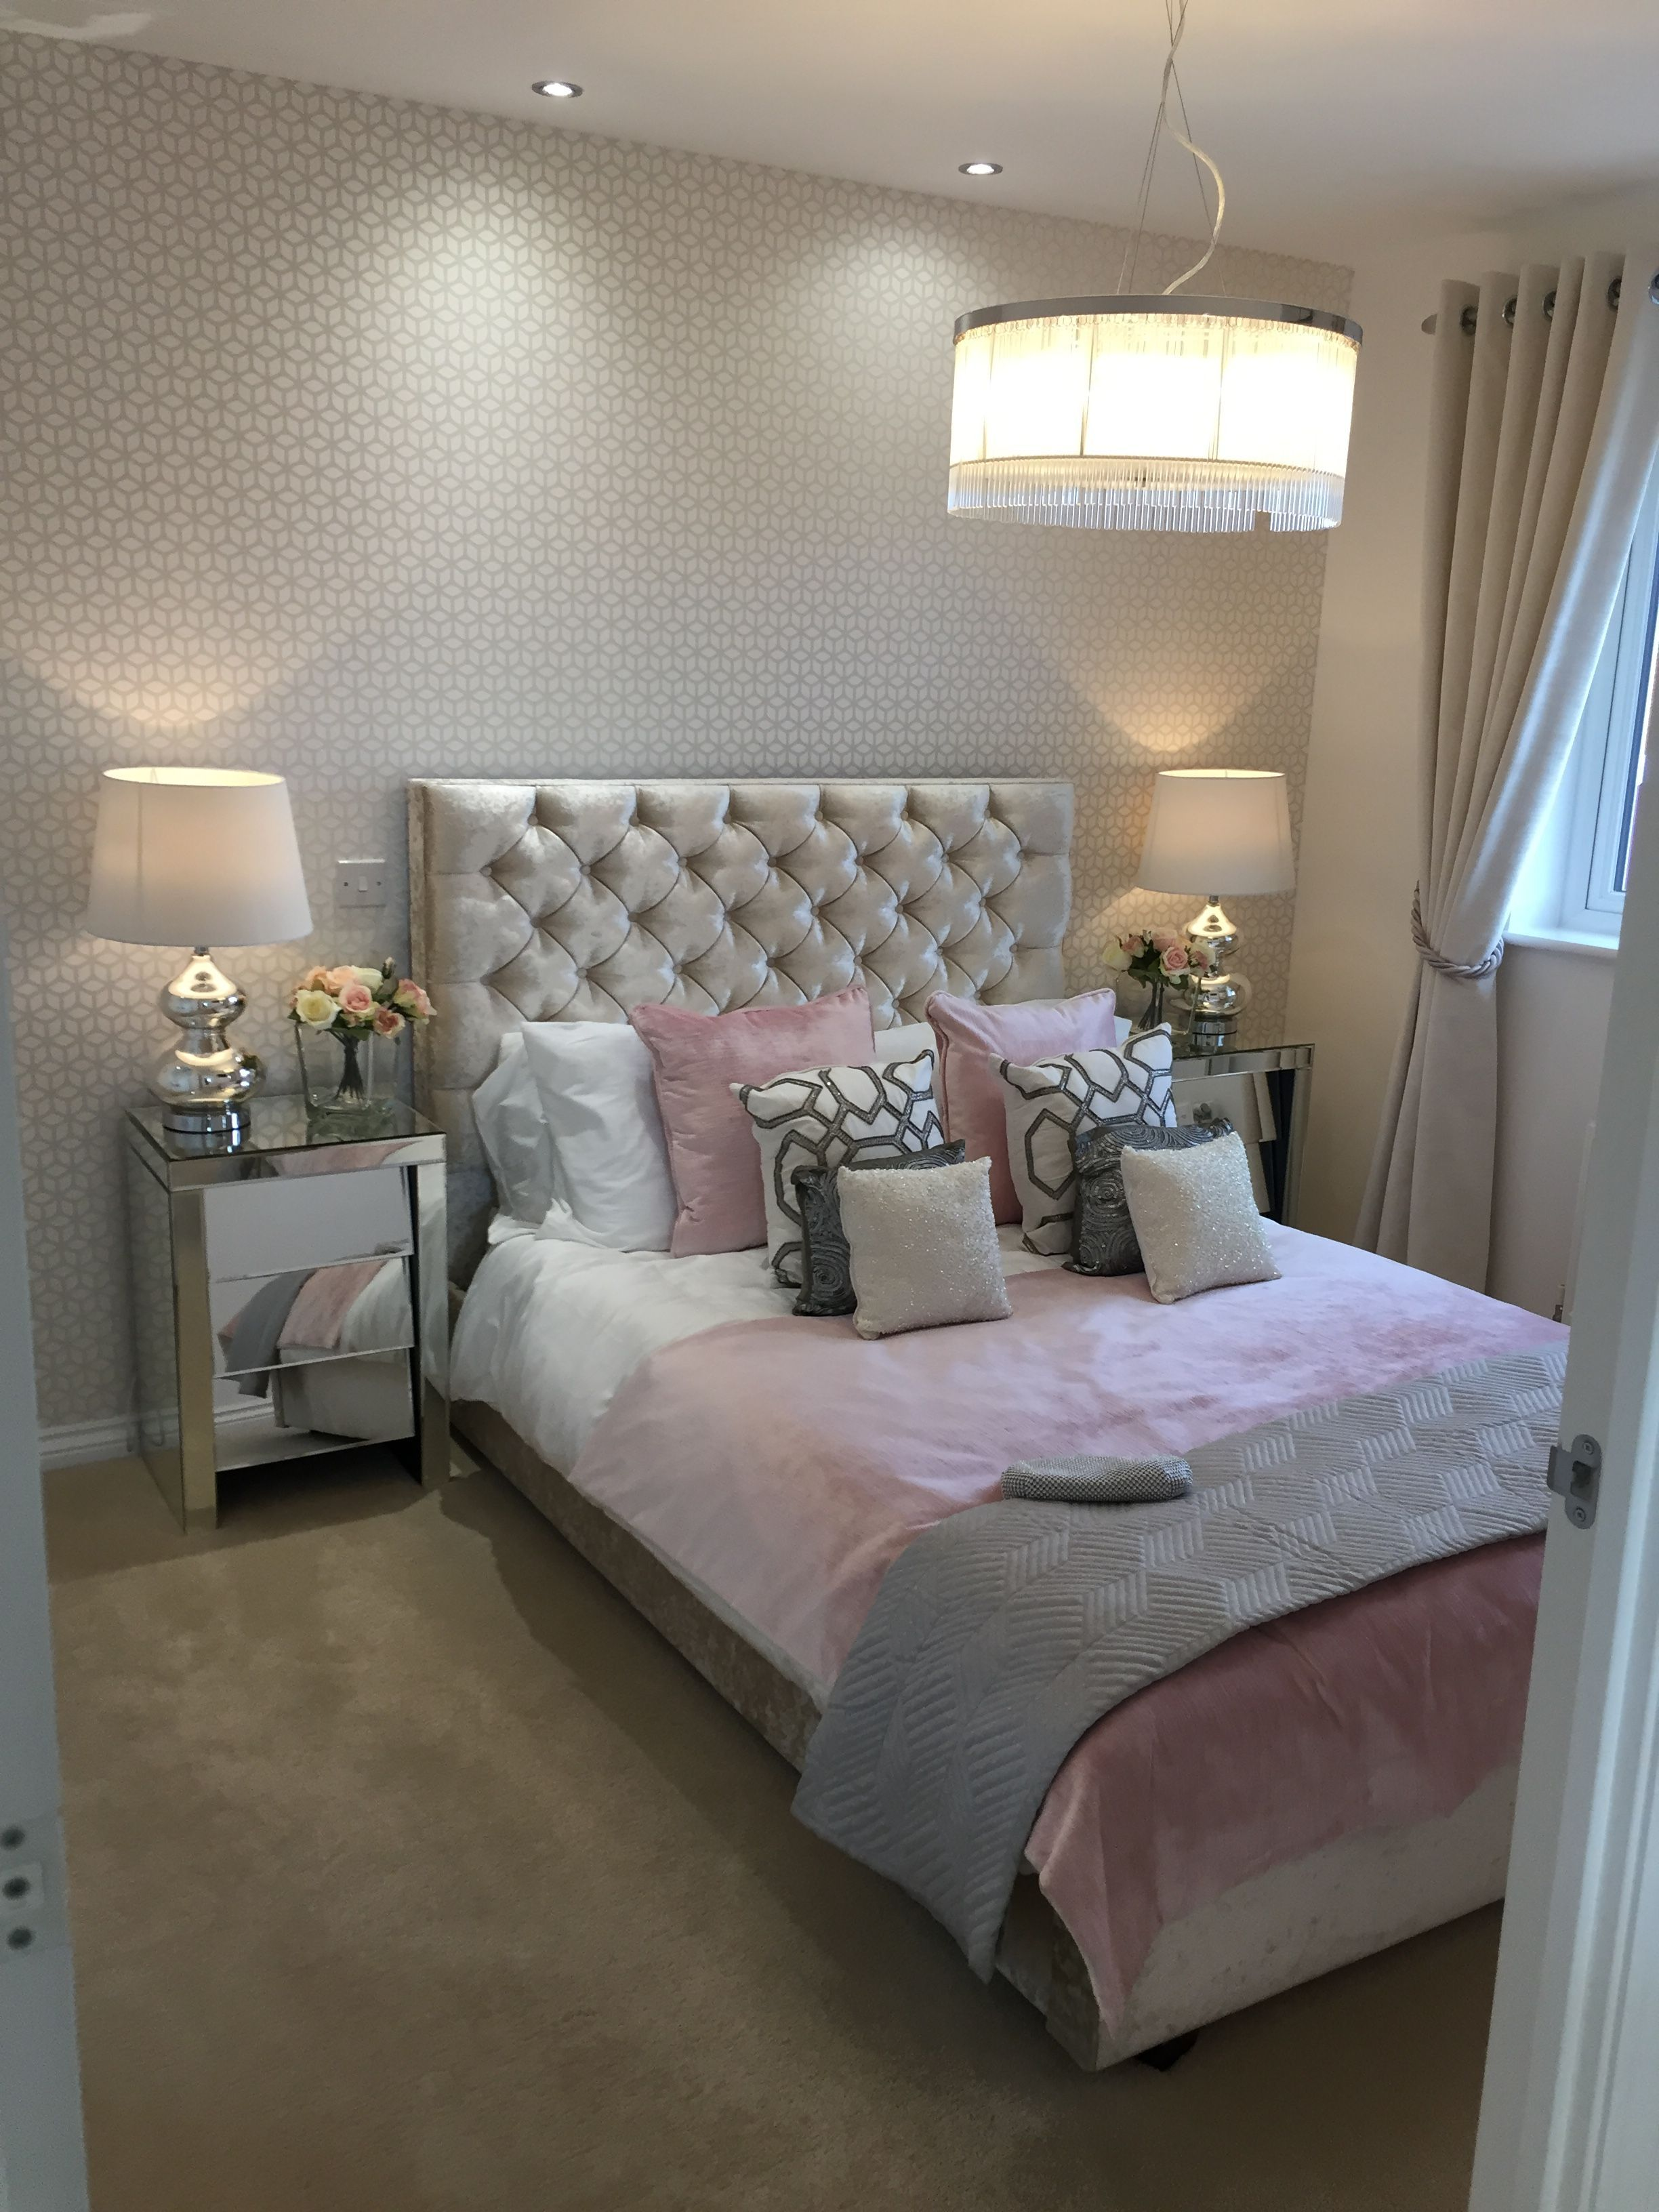 Pink Gold And Silver Bedroom Large Lampshade Chesterfield Headboard Luxurysilverbedrooms Silver Bedroom Decor Silver Bedroom Gold Bedroom Decor